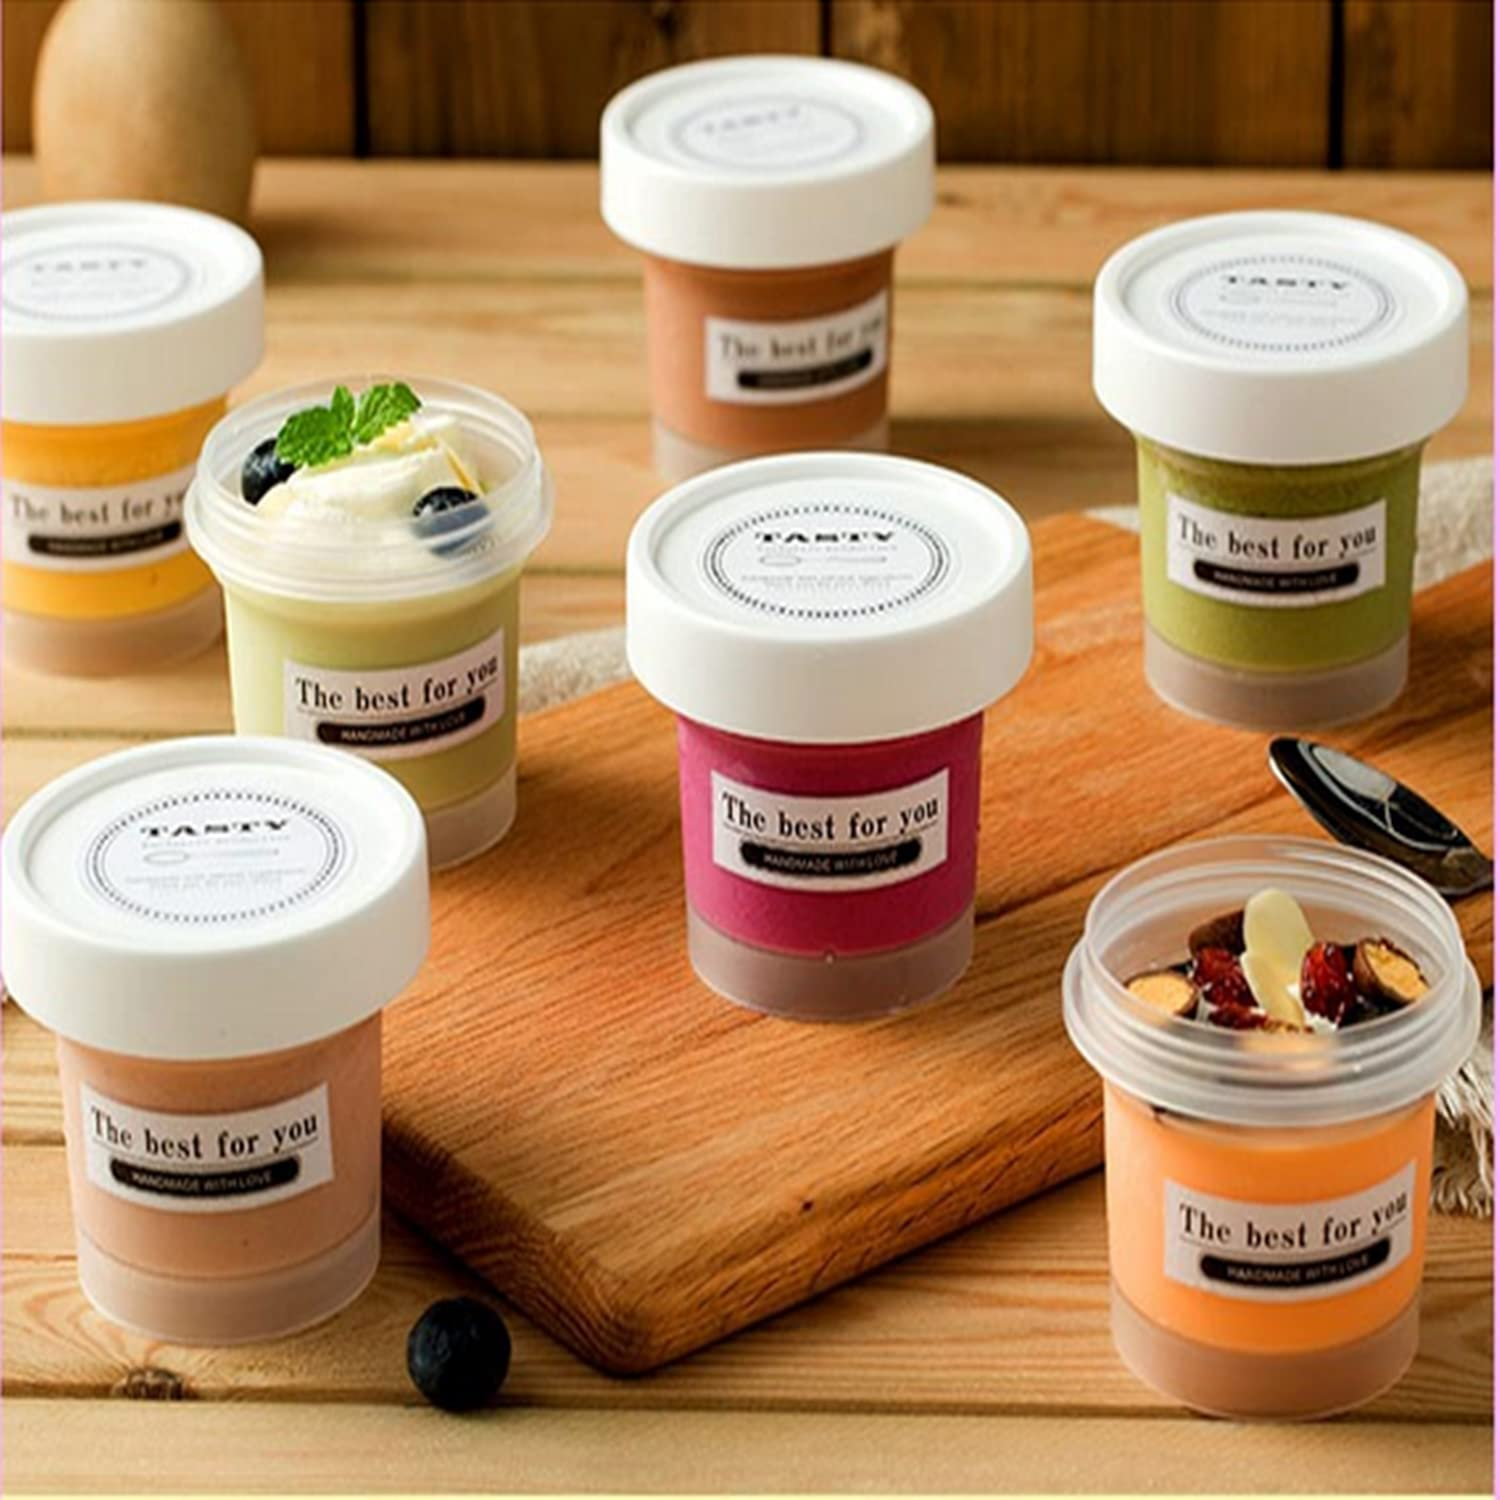 3.4 Oz Transparent Plastic Parfait Cup With Lid, 10-Piece Dessert Cup With Thick Dome Lid Without Hole, Children's Yogurt Fruit Parfait Cup, Take-Out Breakfast and Snacks (With Stickers)